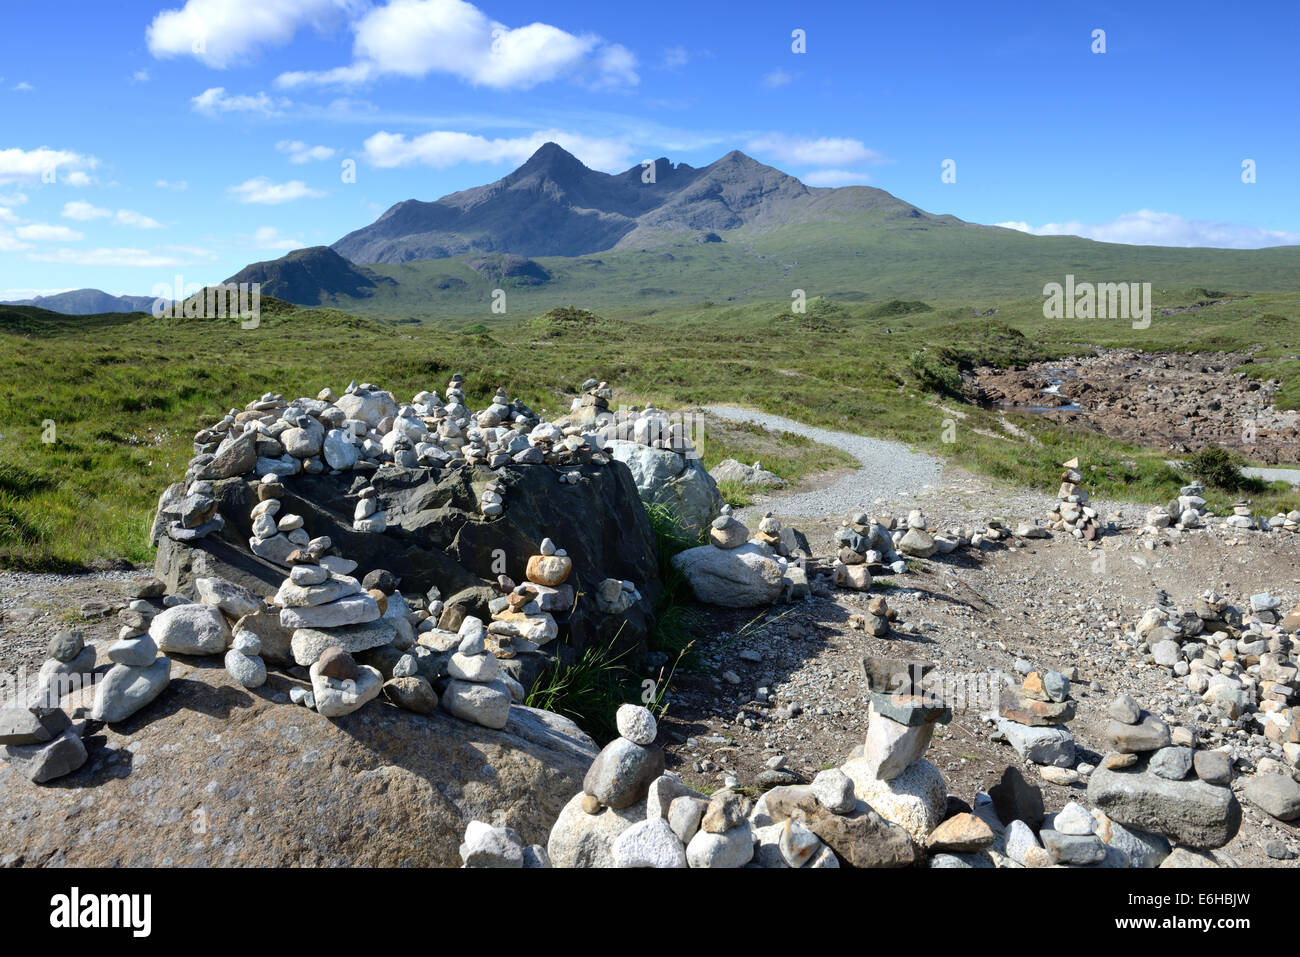 Stones placed on rocks by visitors at Sligachan viewpoint and showing the Black Cuillin ridge on Skye, Scotland - Stock Image